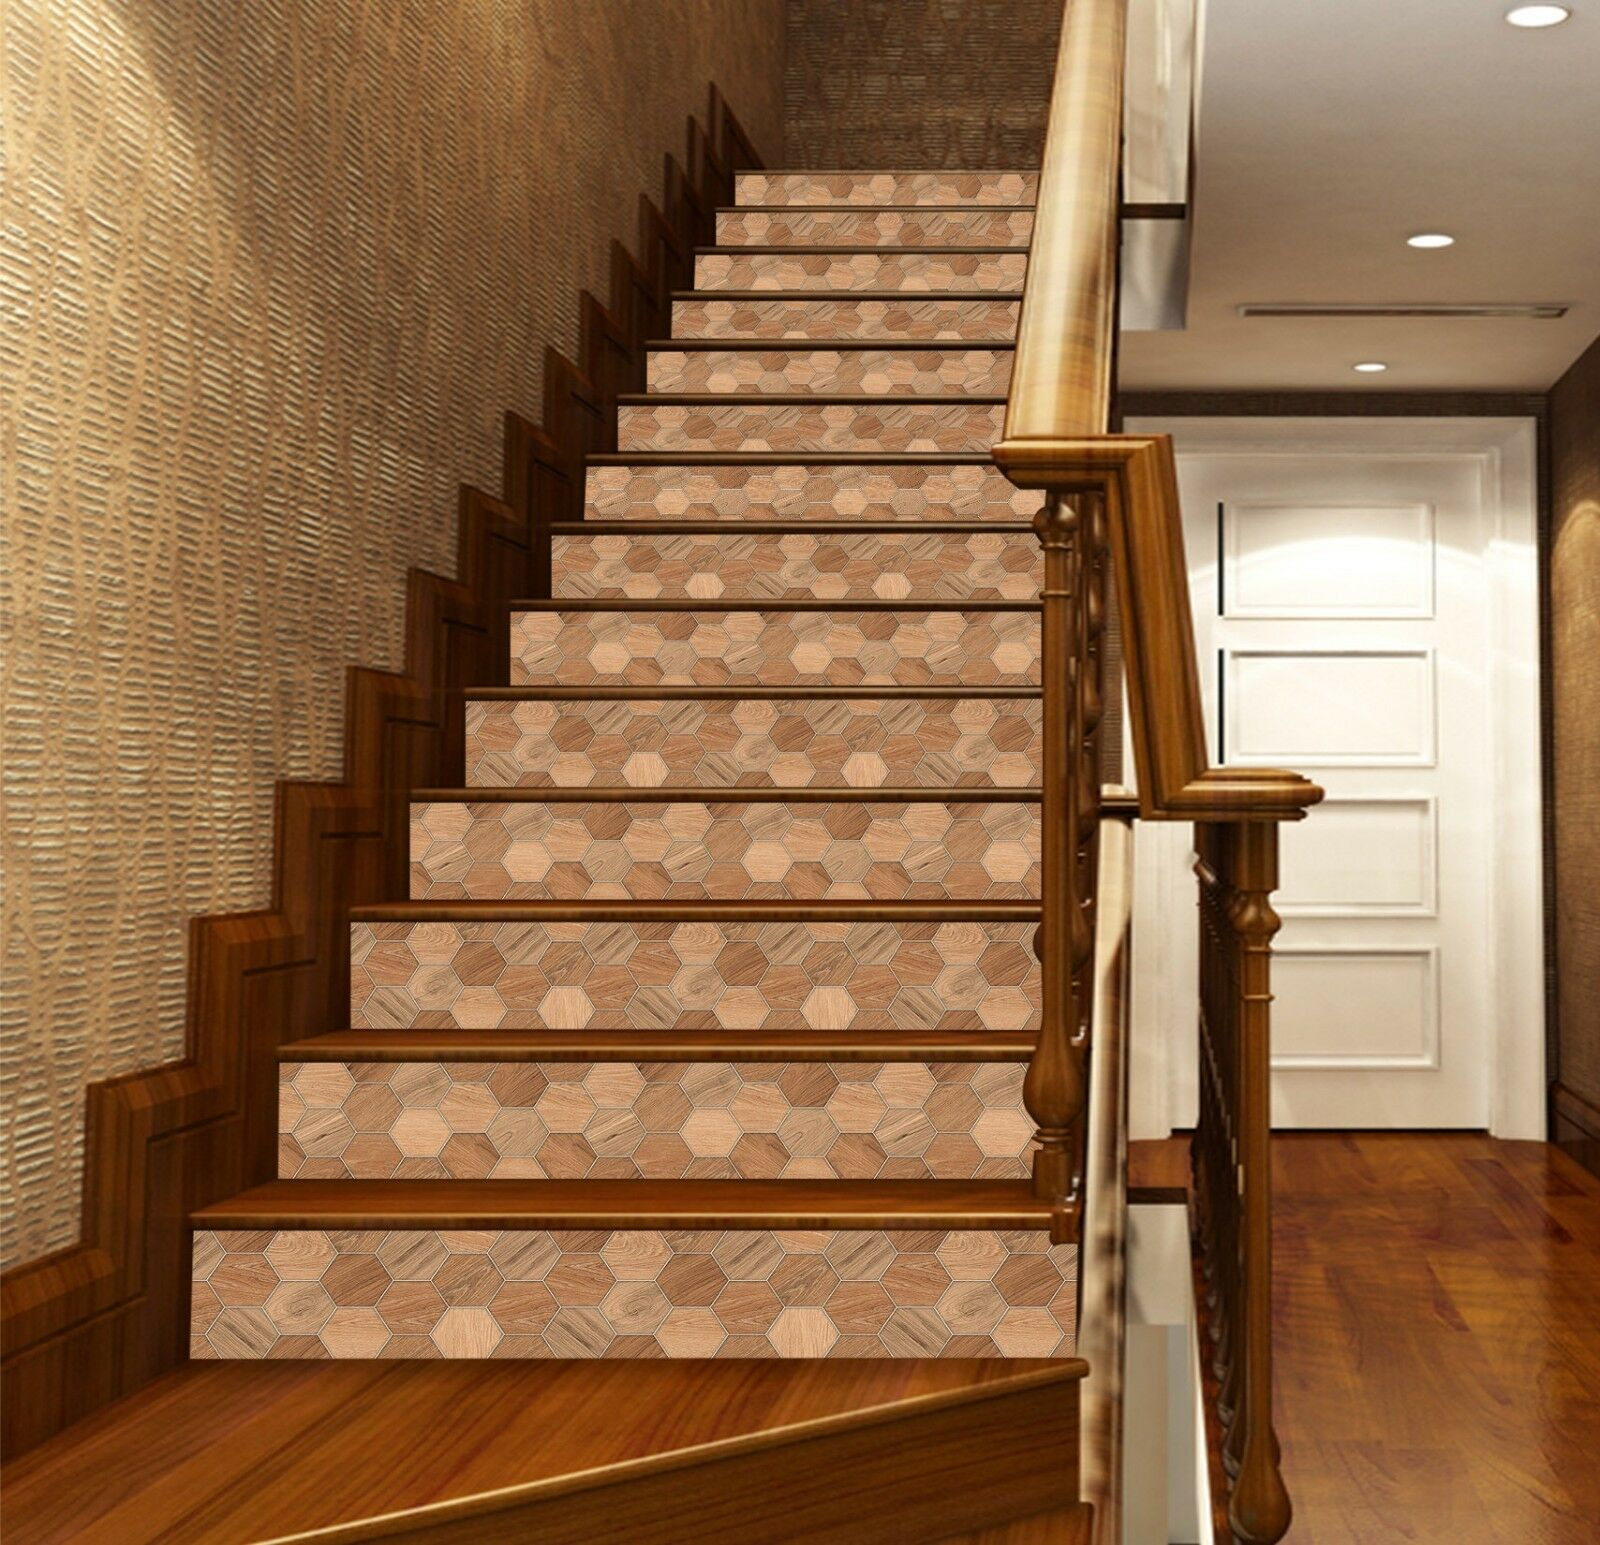 3D Hexagonal Wood 6 Tile Marble Stair Riser Photo Mural Vinyl MXY Wallpaper